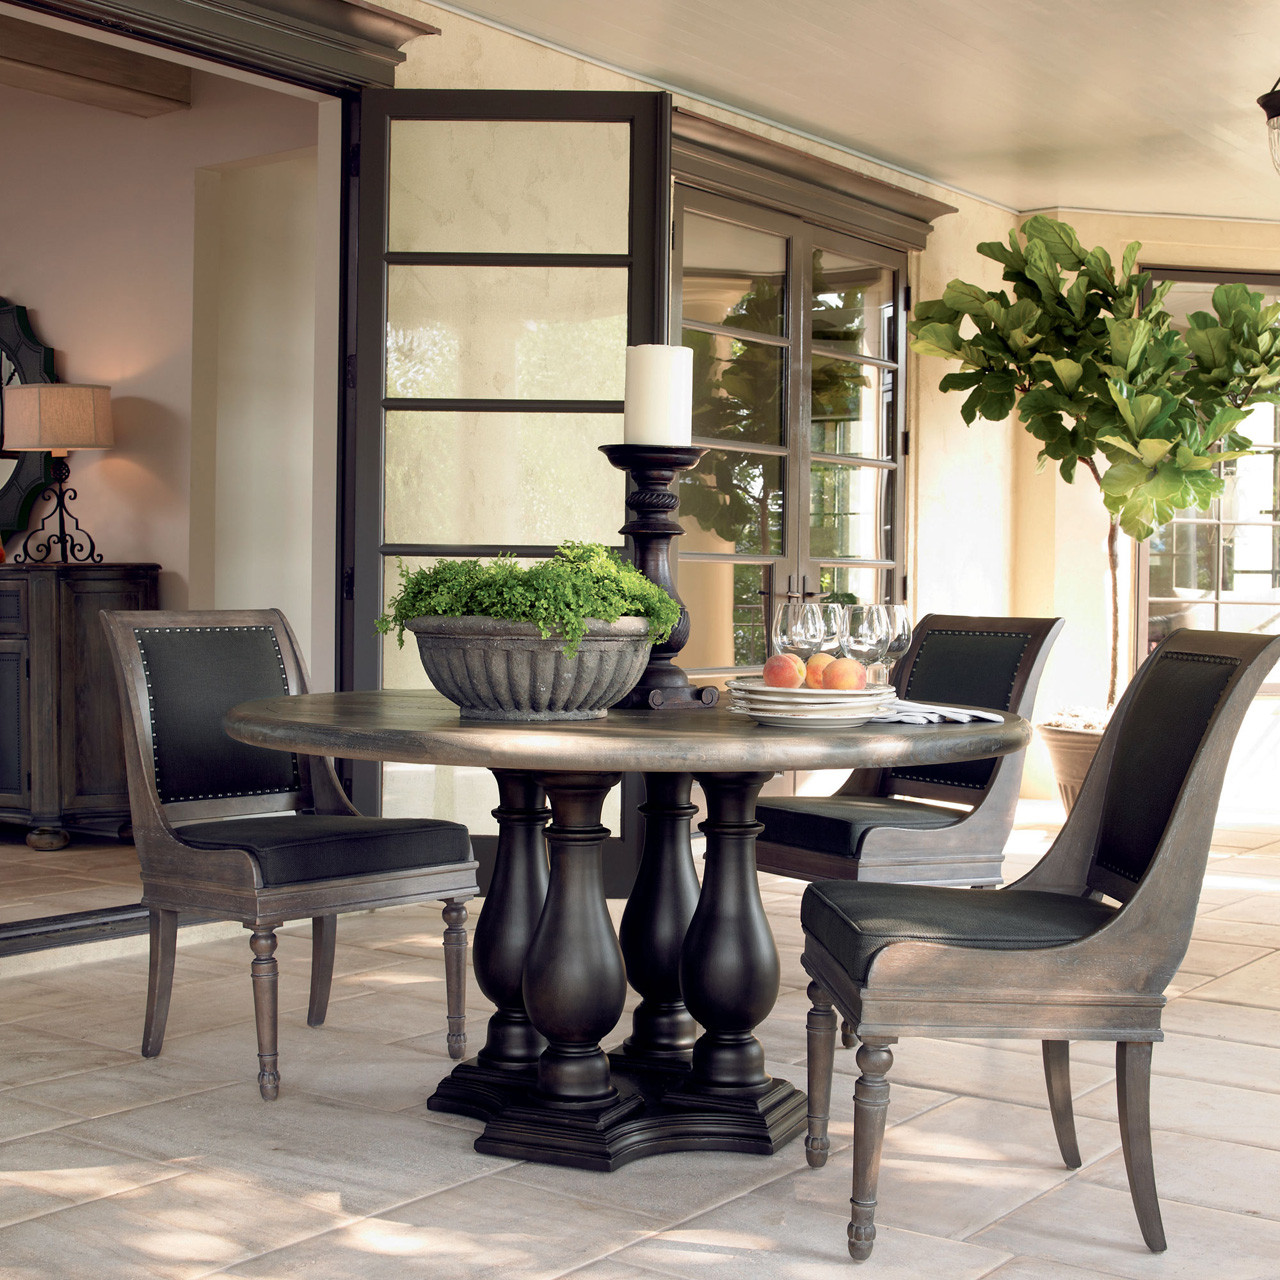 Best ideas about Dining Room Furniture . Save or Pin Dining Room Furniture Now.